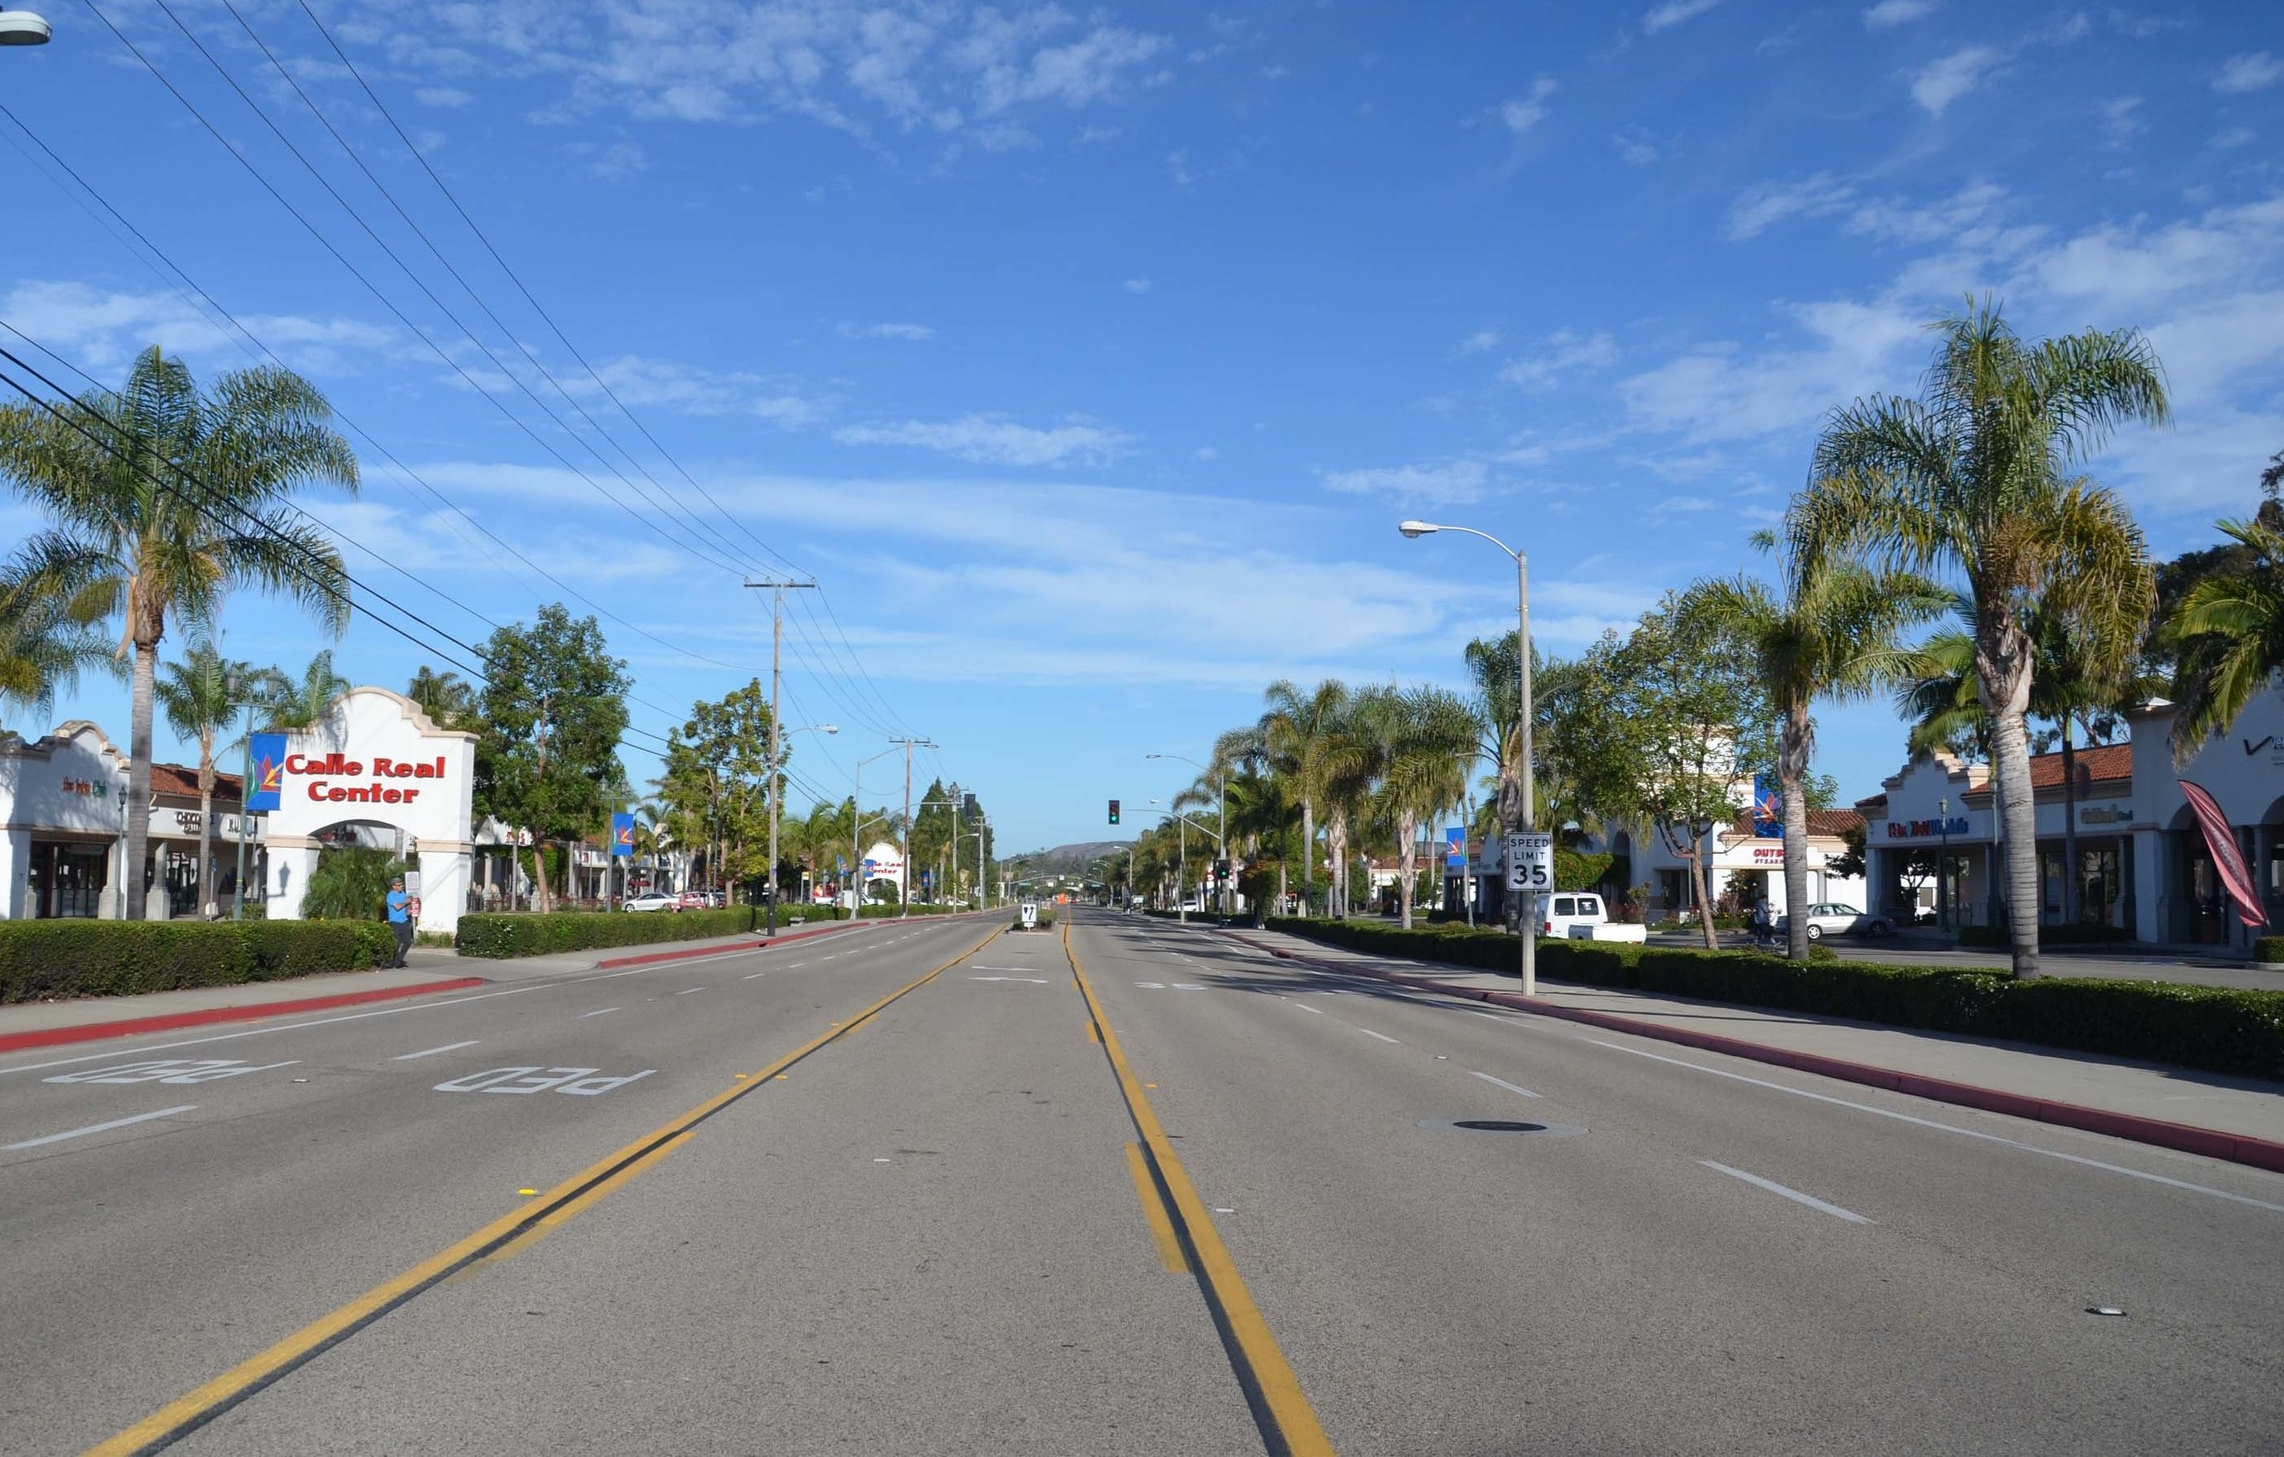 The-business-district-in-Goleta-CA.jpg